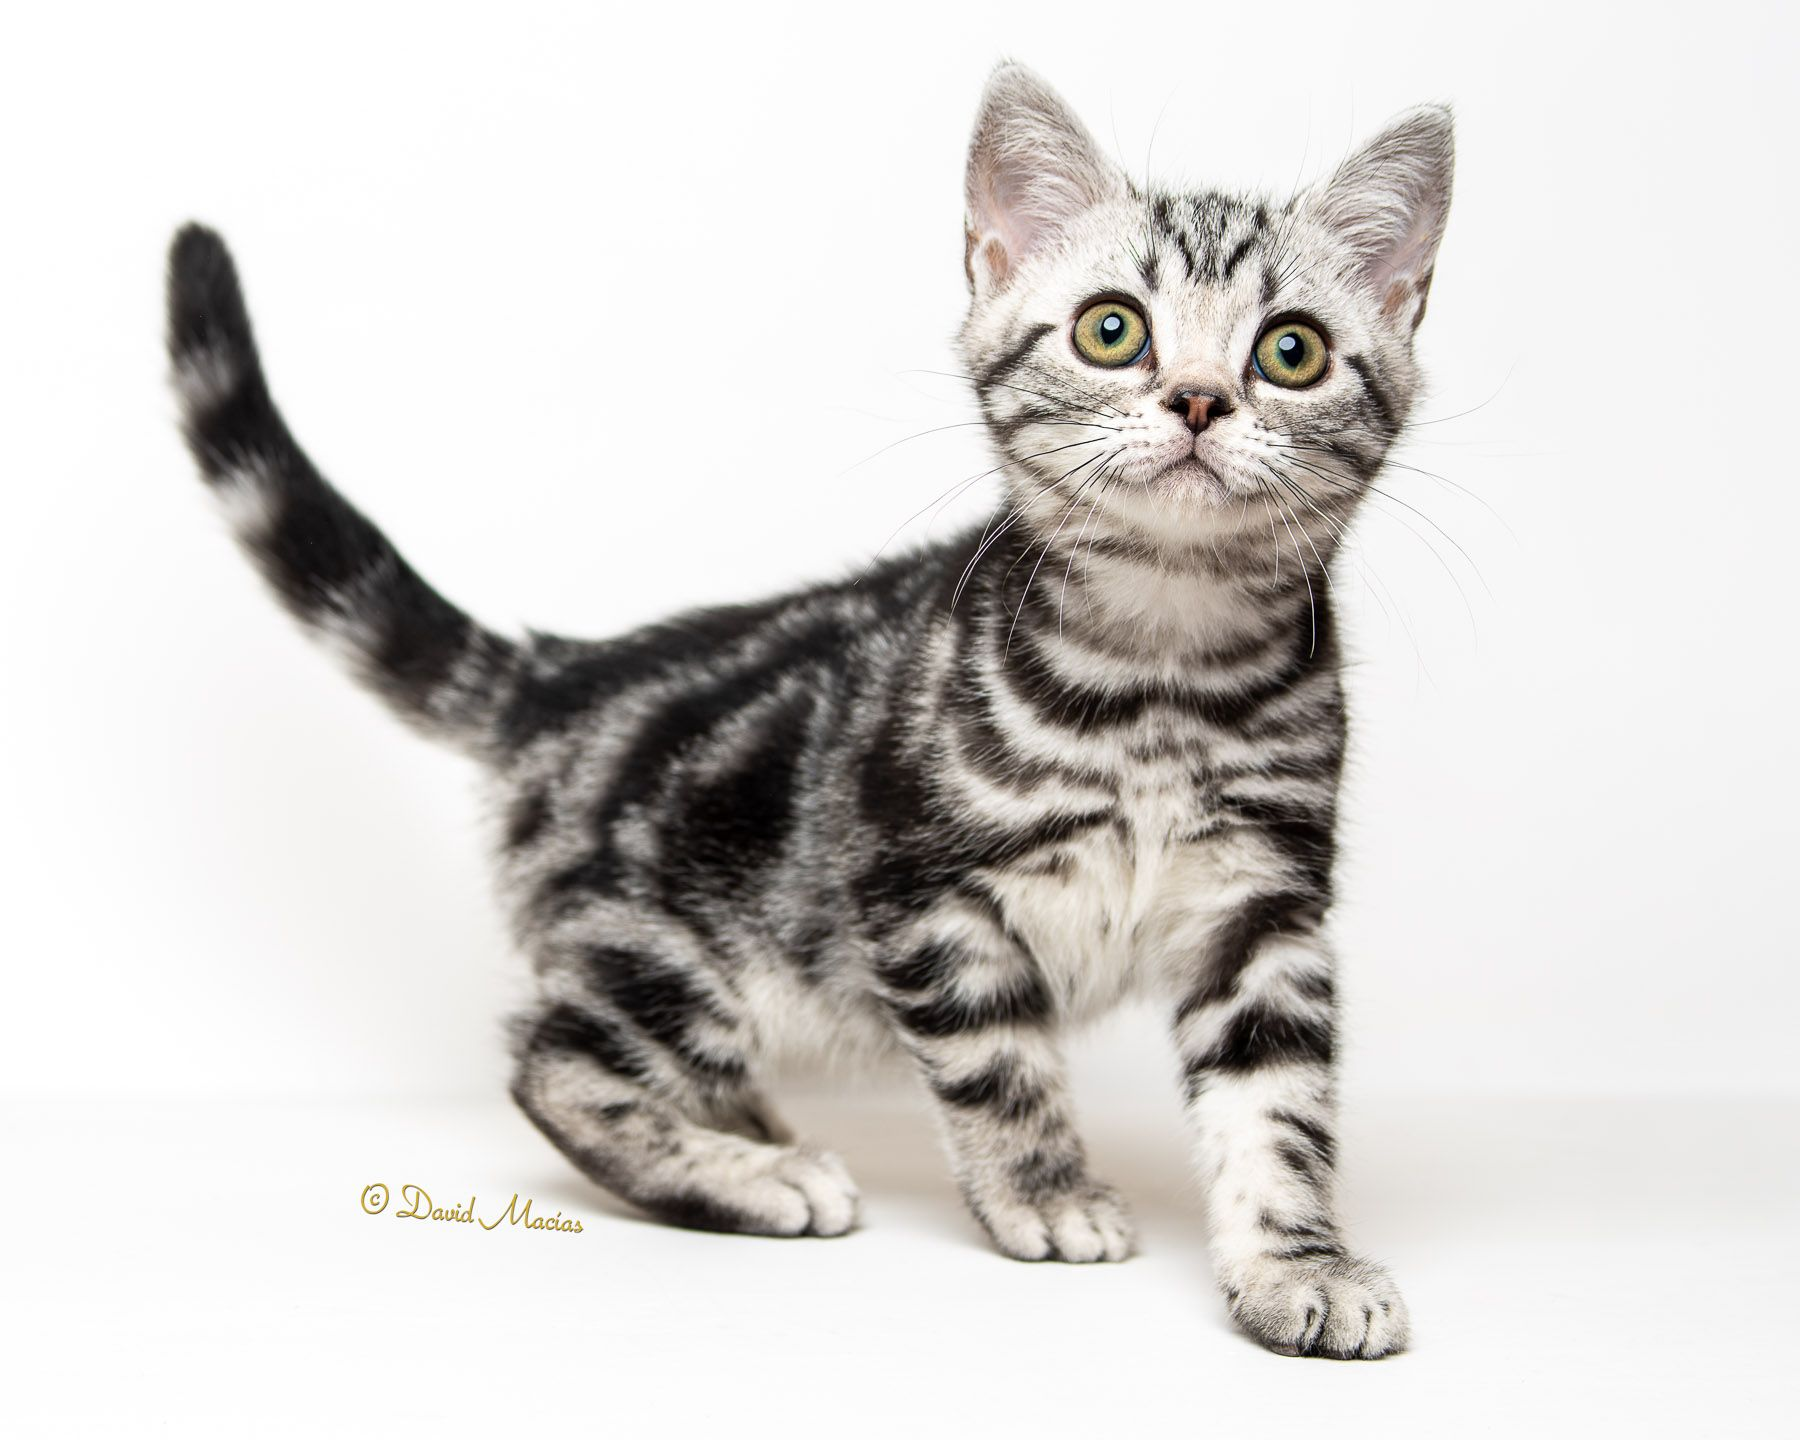 Milla S Kats Jessie One Of Our Gorgeous Babies From A Recent Litter Millaskats Davidmac In 2020 American Shorthair Kitten American Shorthair Cat American Shorthair